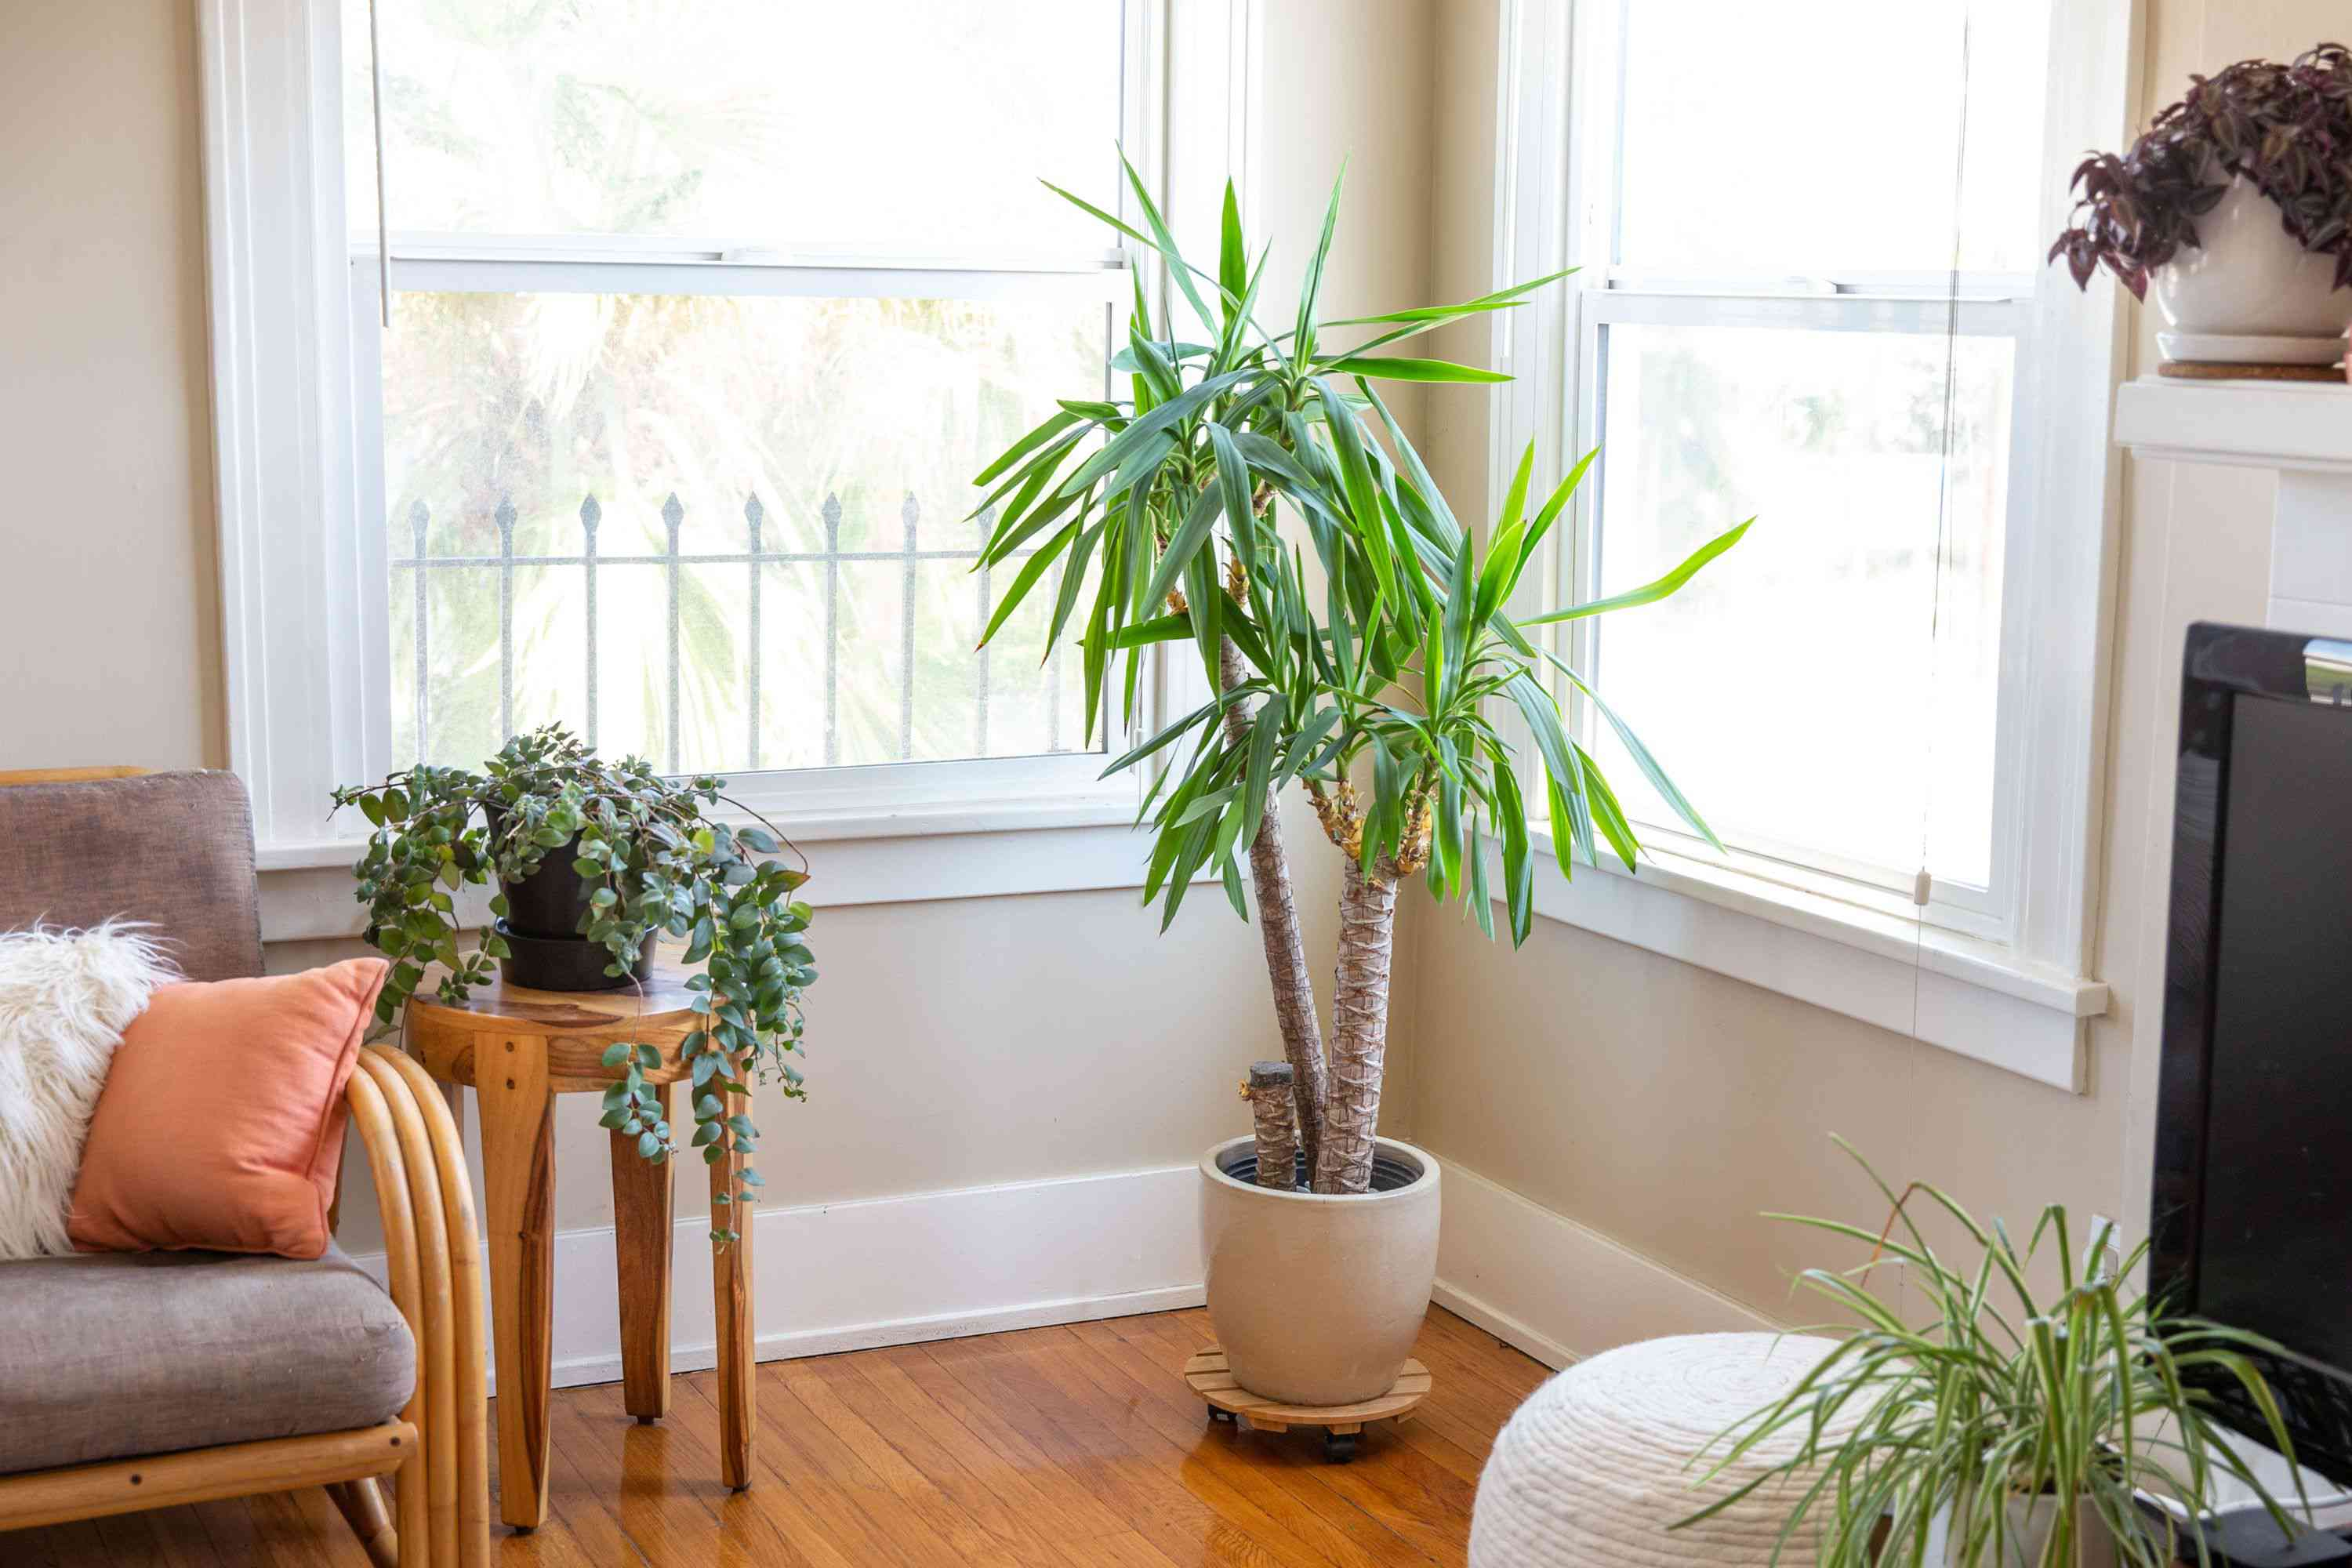 Yucca palm with sharp leaves in corner of living room